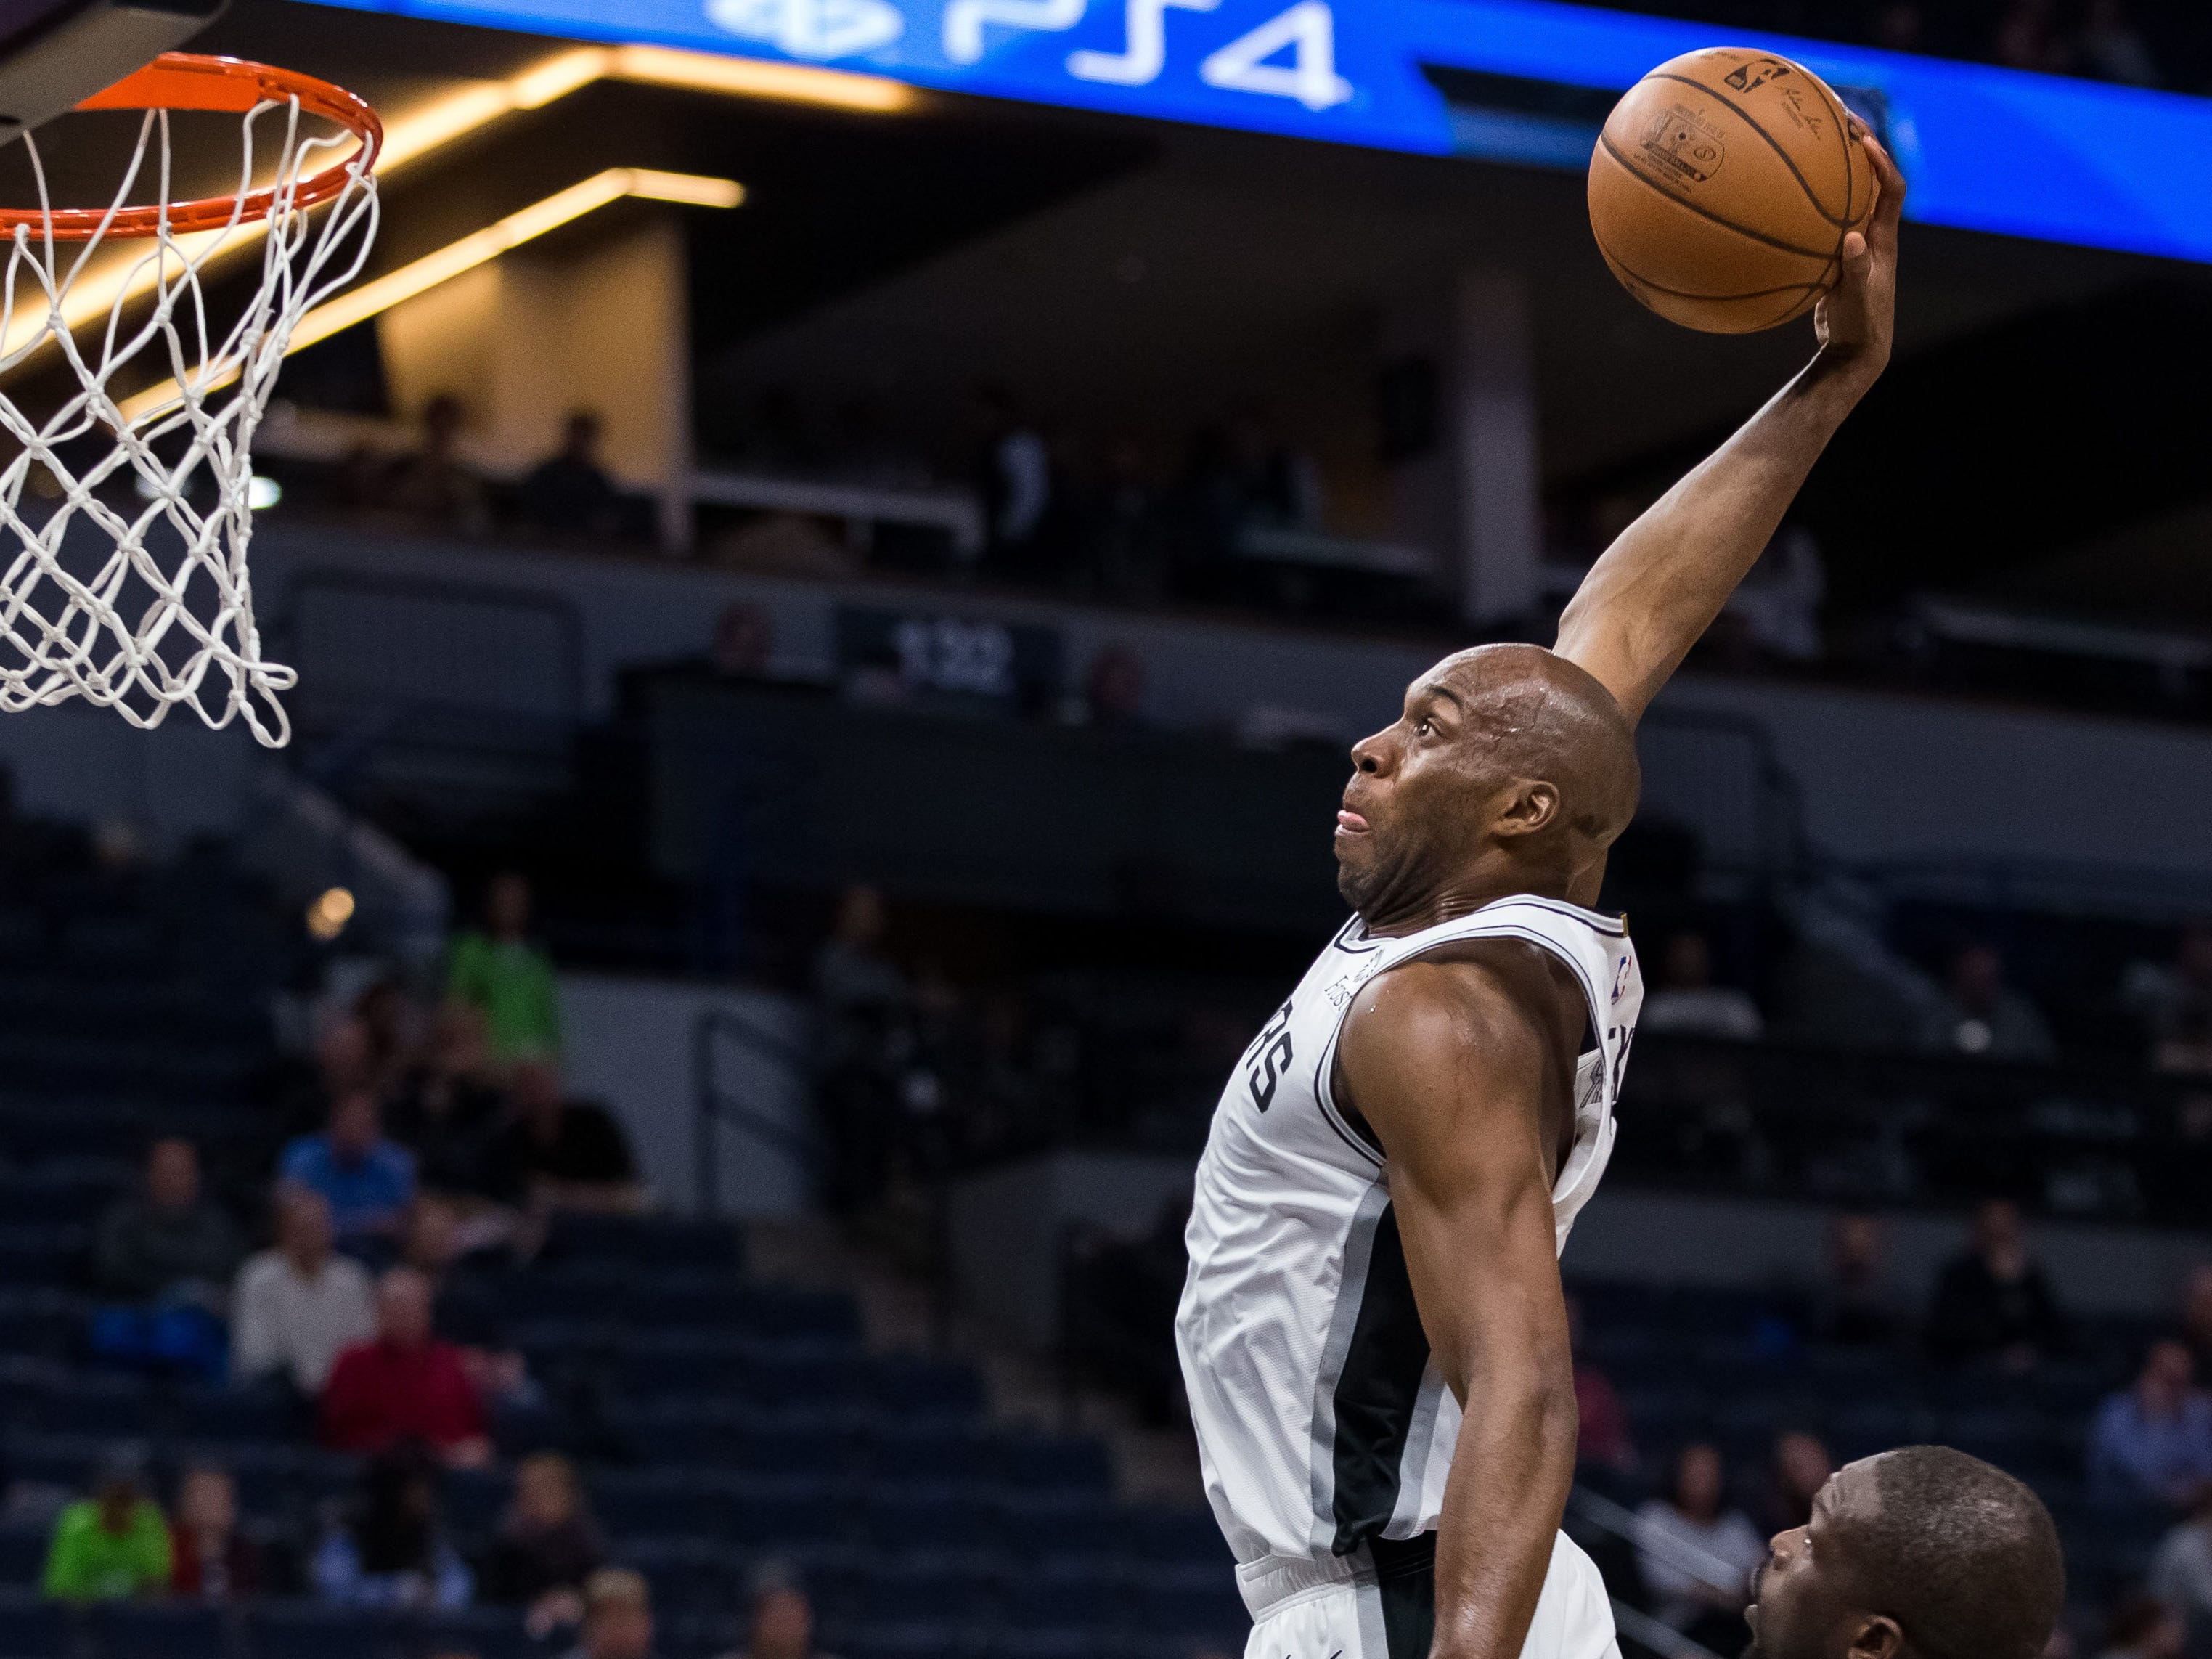 Nov. 28: Spurs forward Quincy Pondexter throws down a thunderous one-handed flush during the second half against the Timberwolves in Minneapolis.